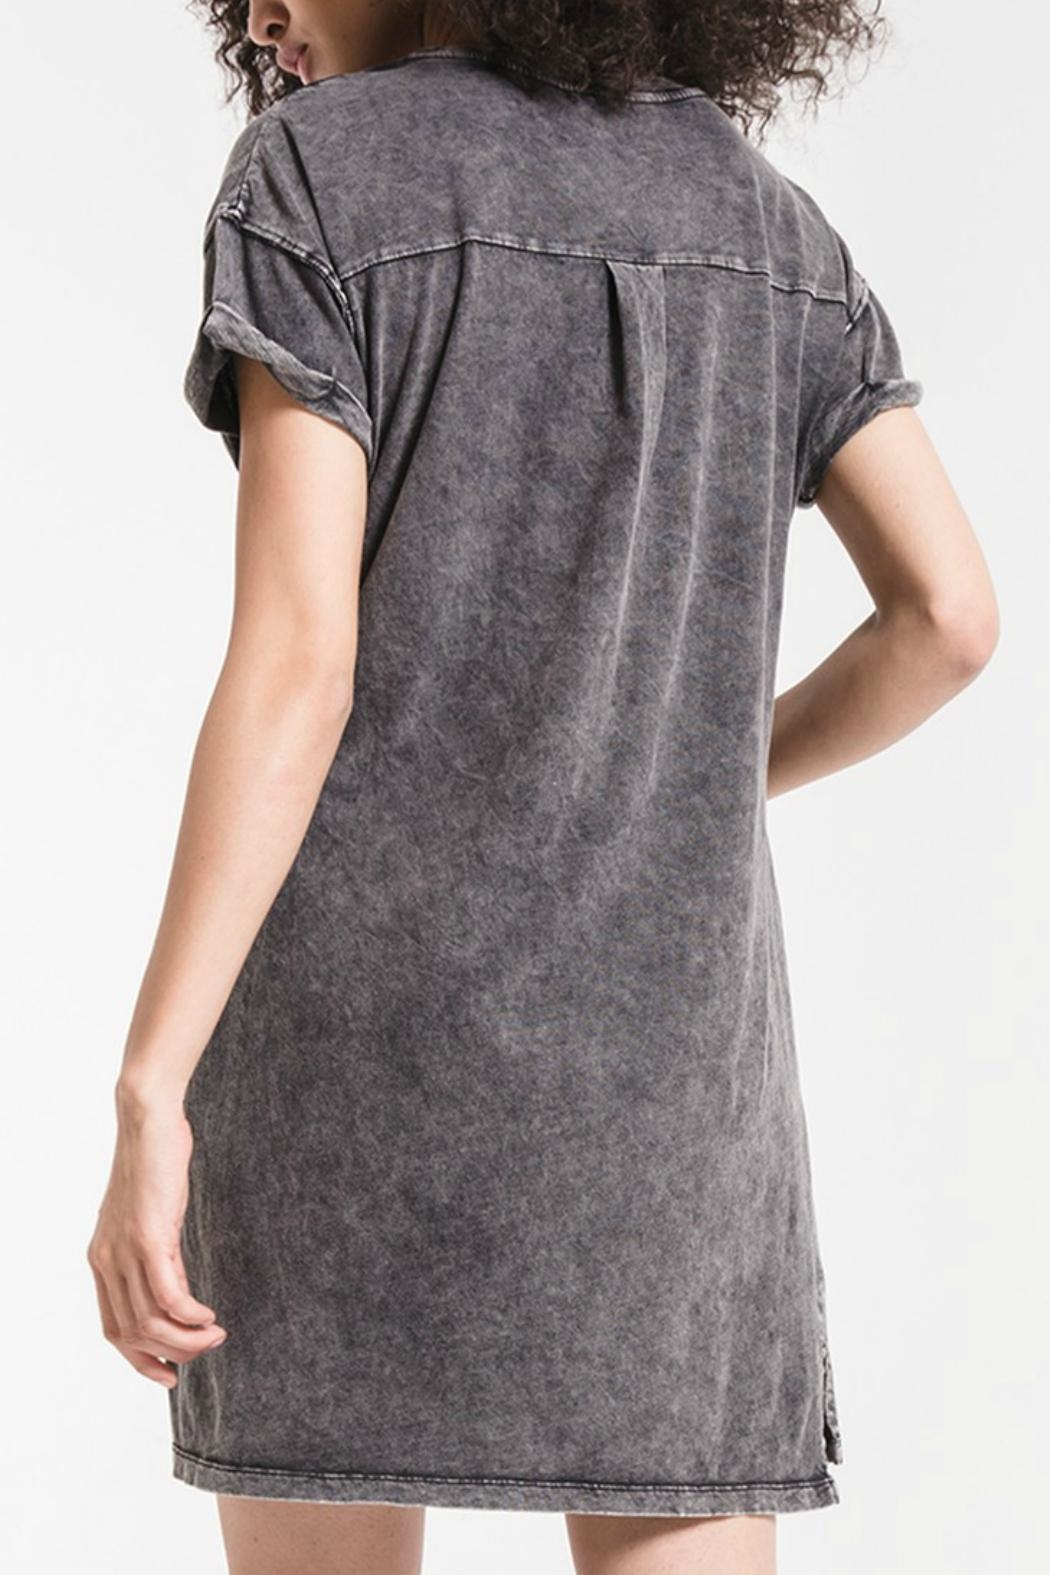 z supply Washed Cotton Dress - Front Full Image